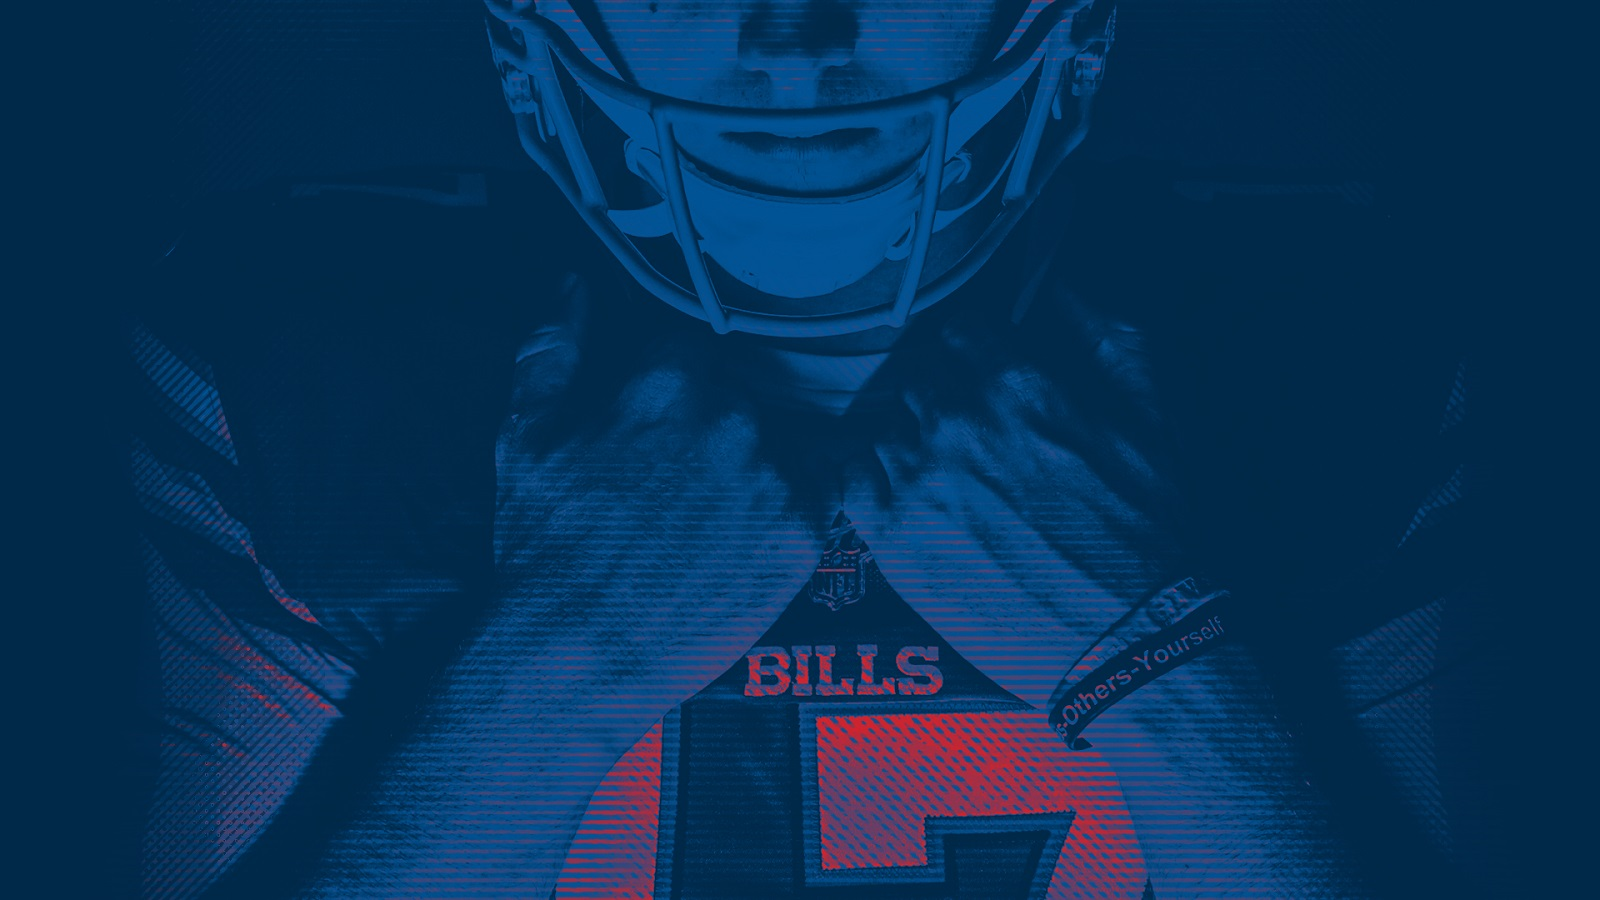 How to Watch 'Buffalo Bills' Without Cable in 2020 | TechNadu